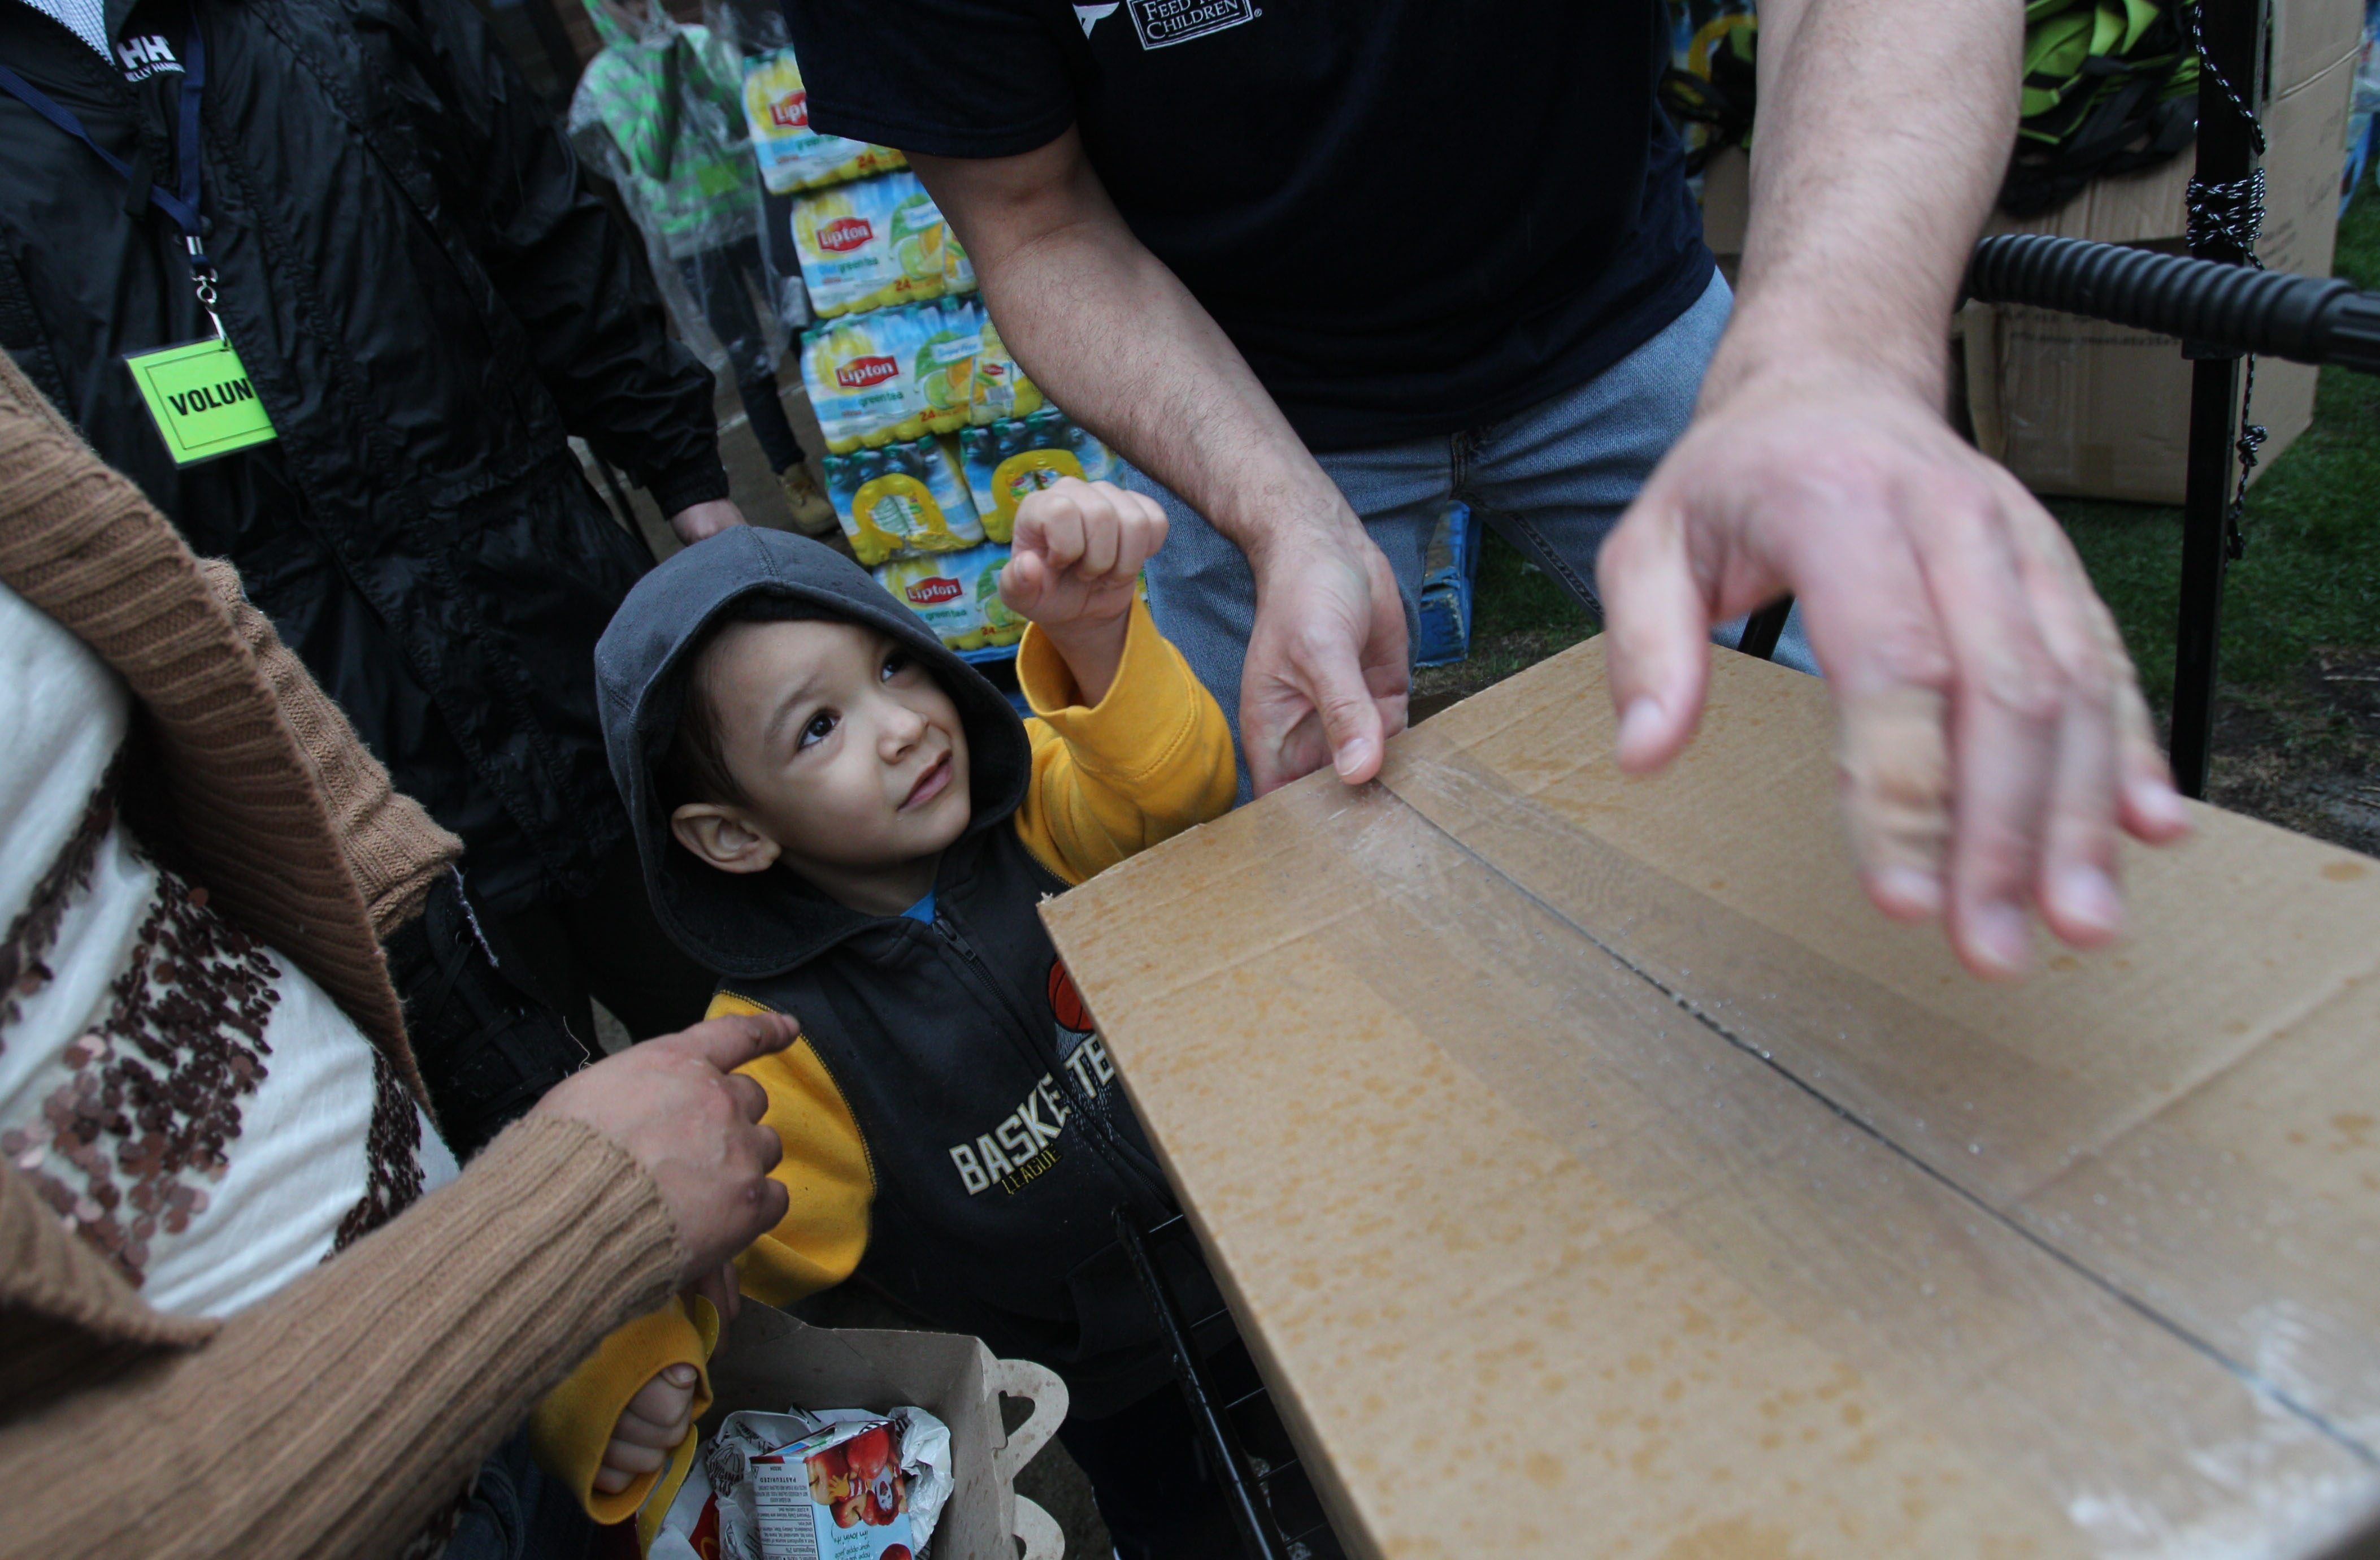 Eight hundred families in Buffalo's poorest neighborhood, on the lower West Side, are given food April 24 at the Belle Center. Here, Evan Camilo, 3, makes sure his mom chooses the beverage he likes. The Belle Center and the Buffalo Dream Center were organizers for the event.